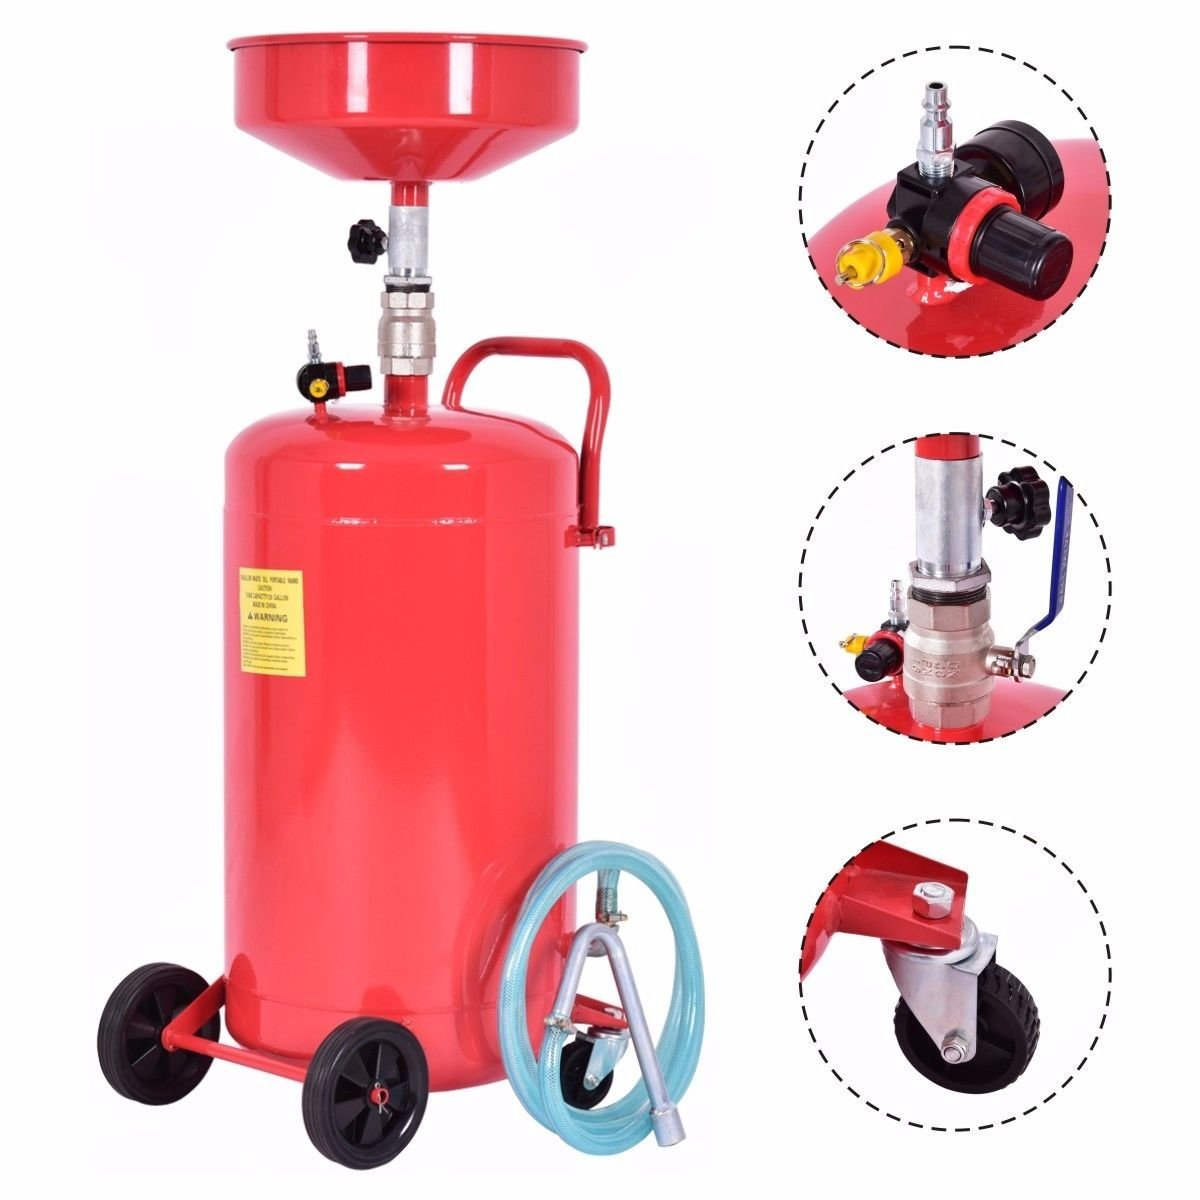 Waste Oil Drain Gallon Portable Air 20 Drainer Capacity Tank Operate Wheel Hose Operated Adjustable Drainage Lift